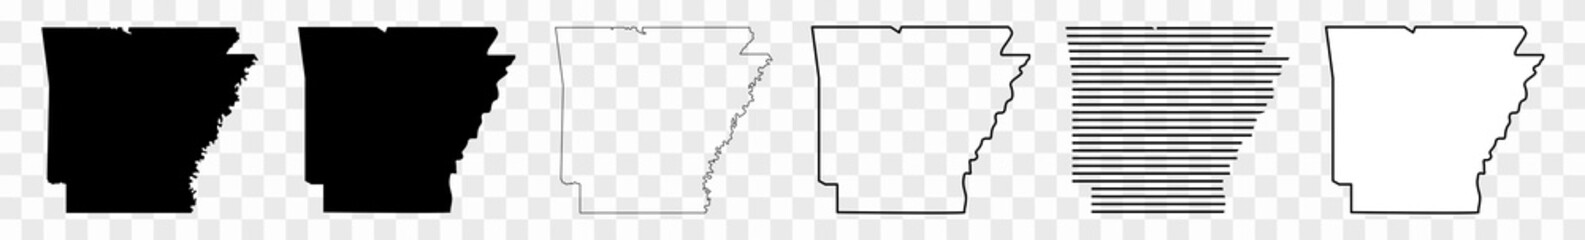 Arkansas Map Black | State Border | United States | US America | Transparent Isolated | Variations Fotomurales